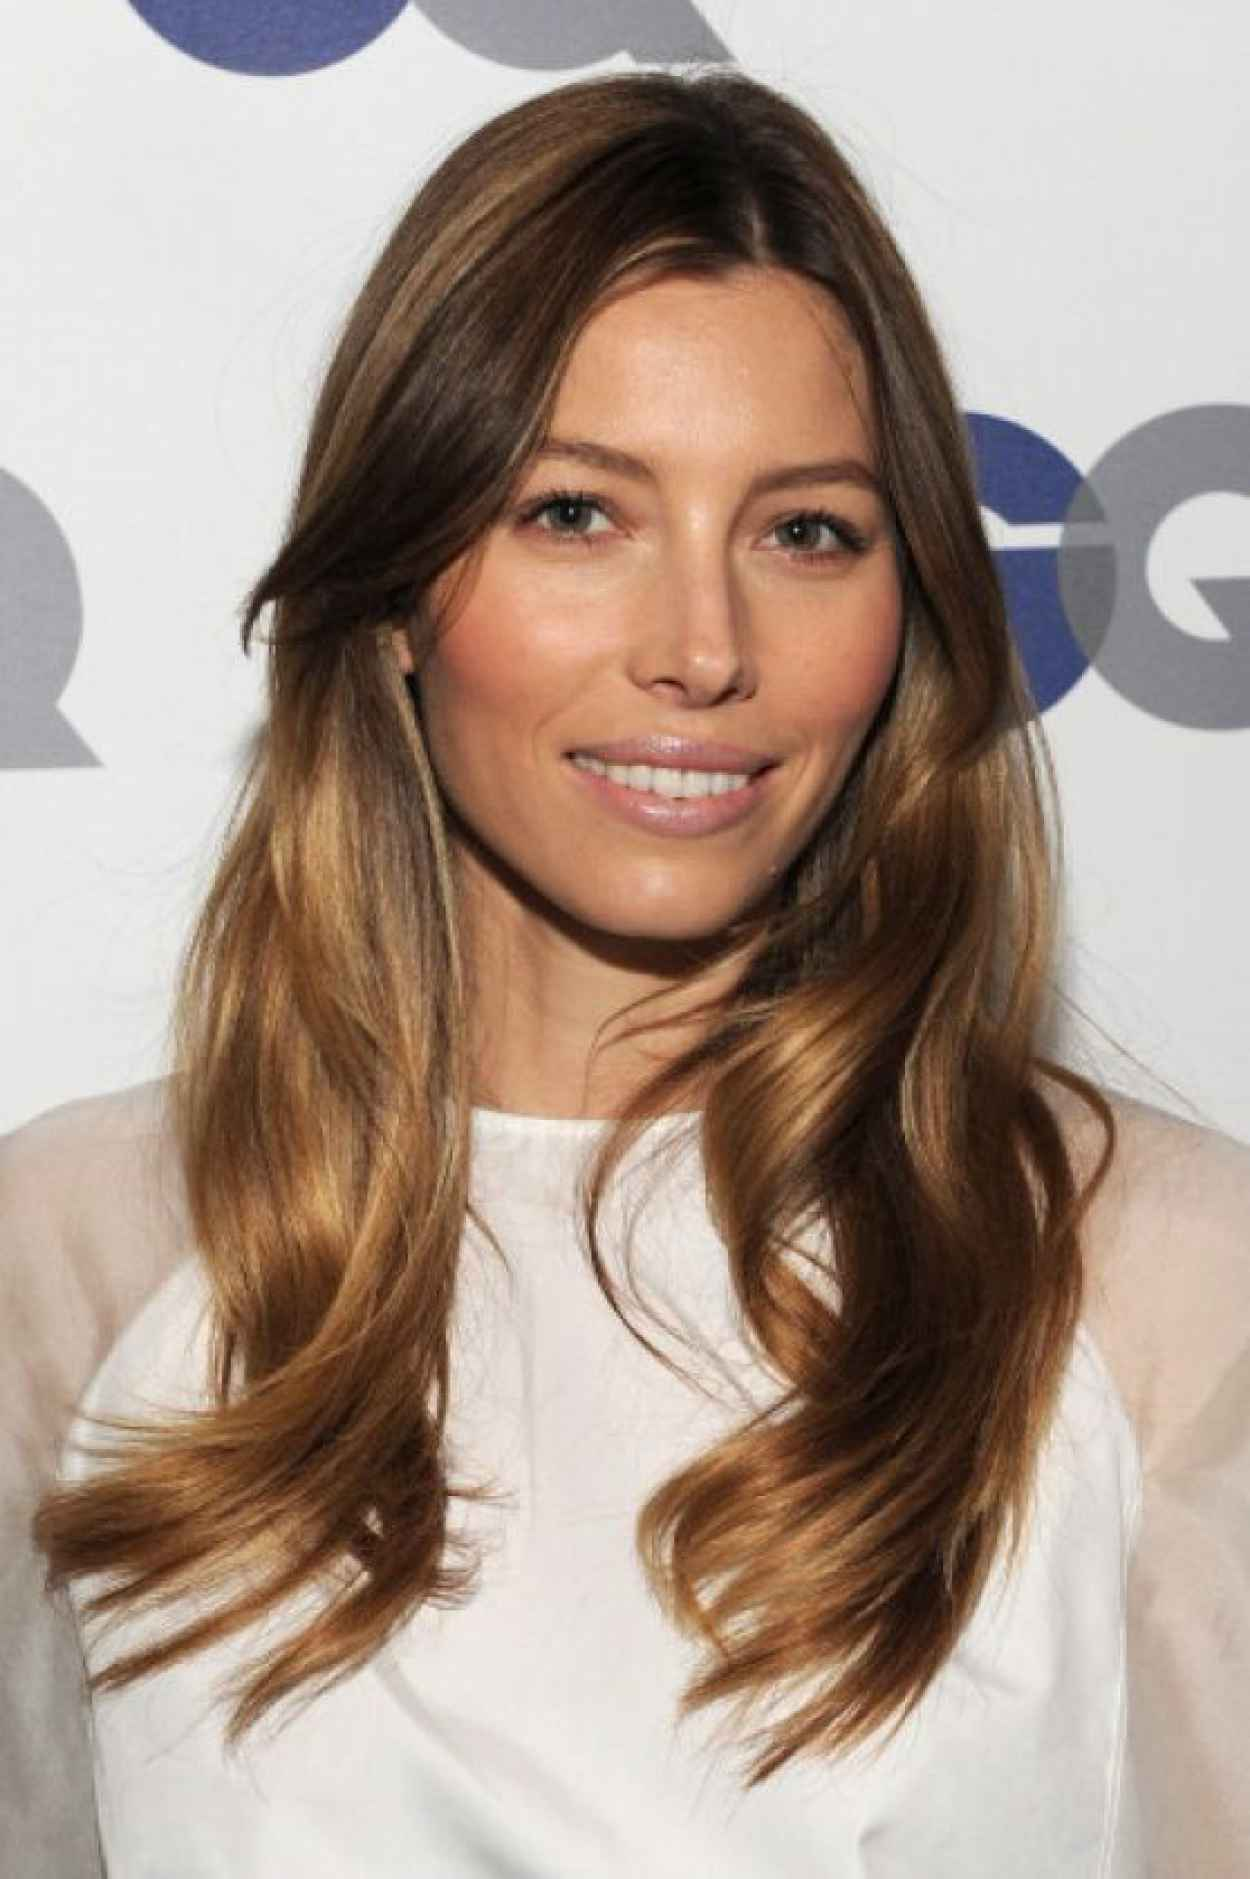 Jessica Biel Attends GQ Men Of The Year Dinner-1